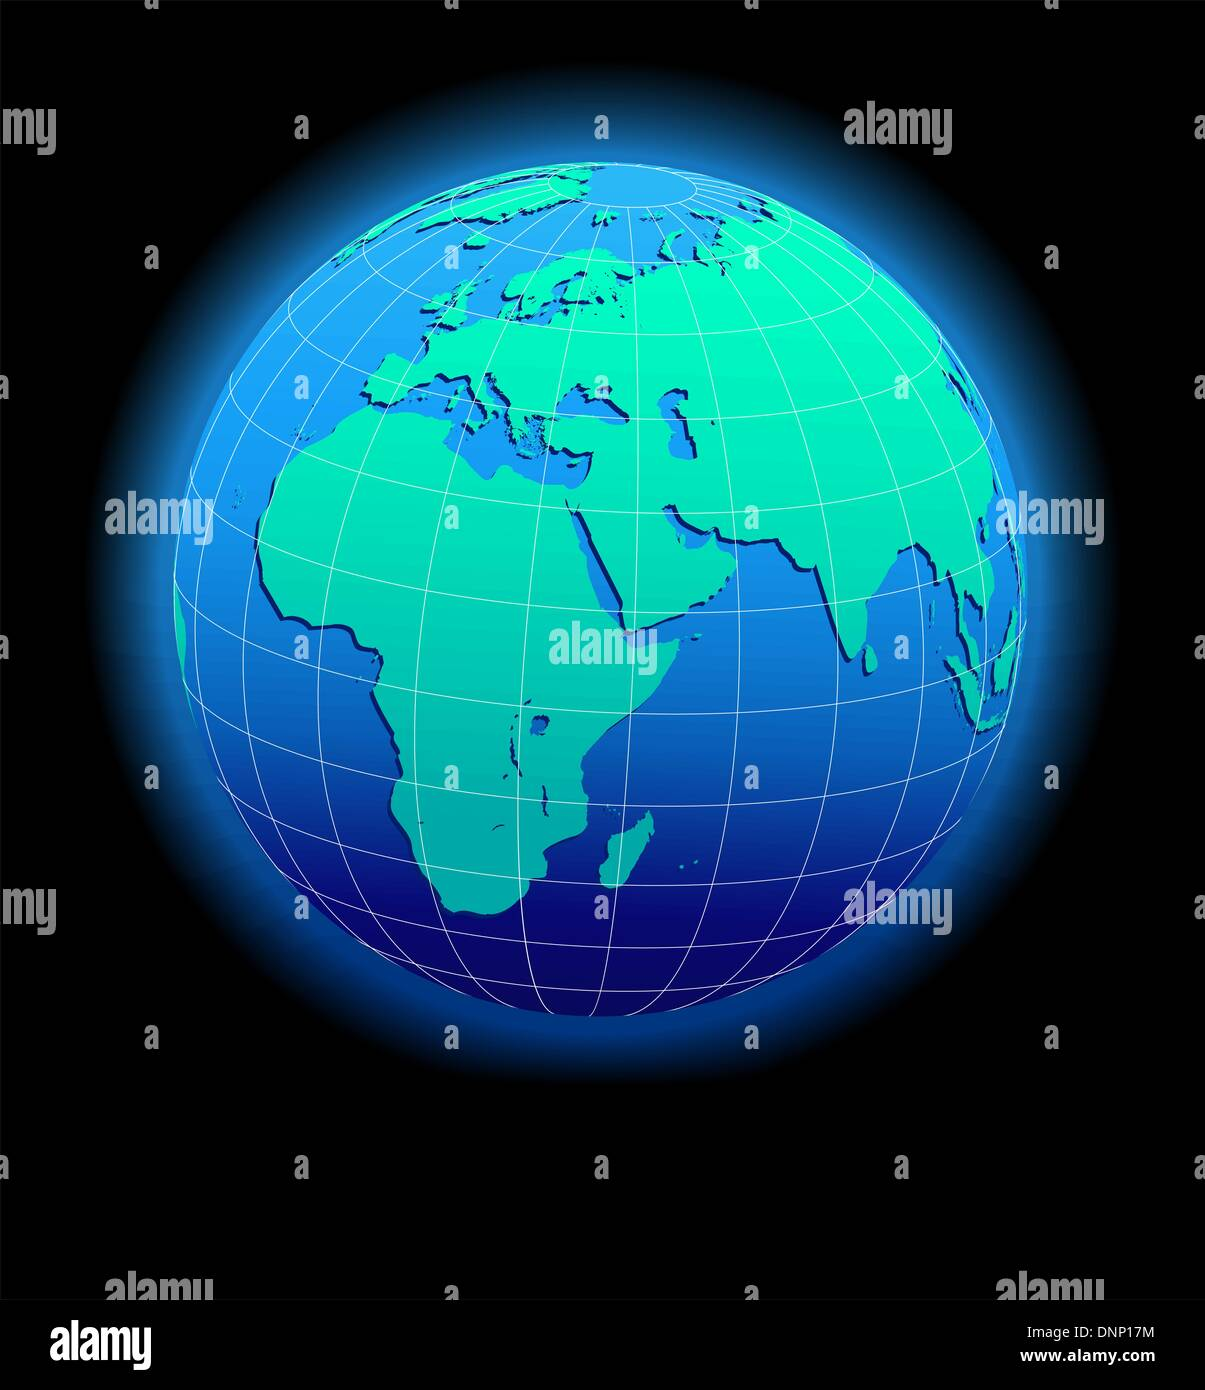 Africa, Arabia and India Global World - Middle East - Stock Image